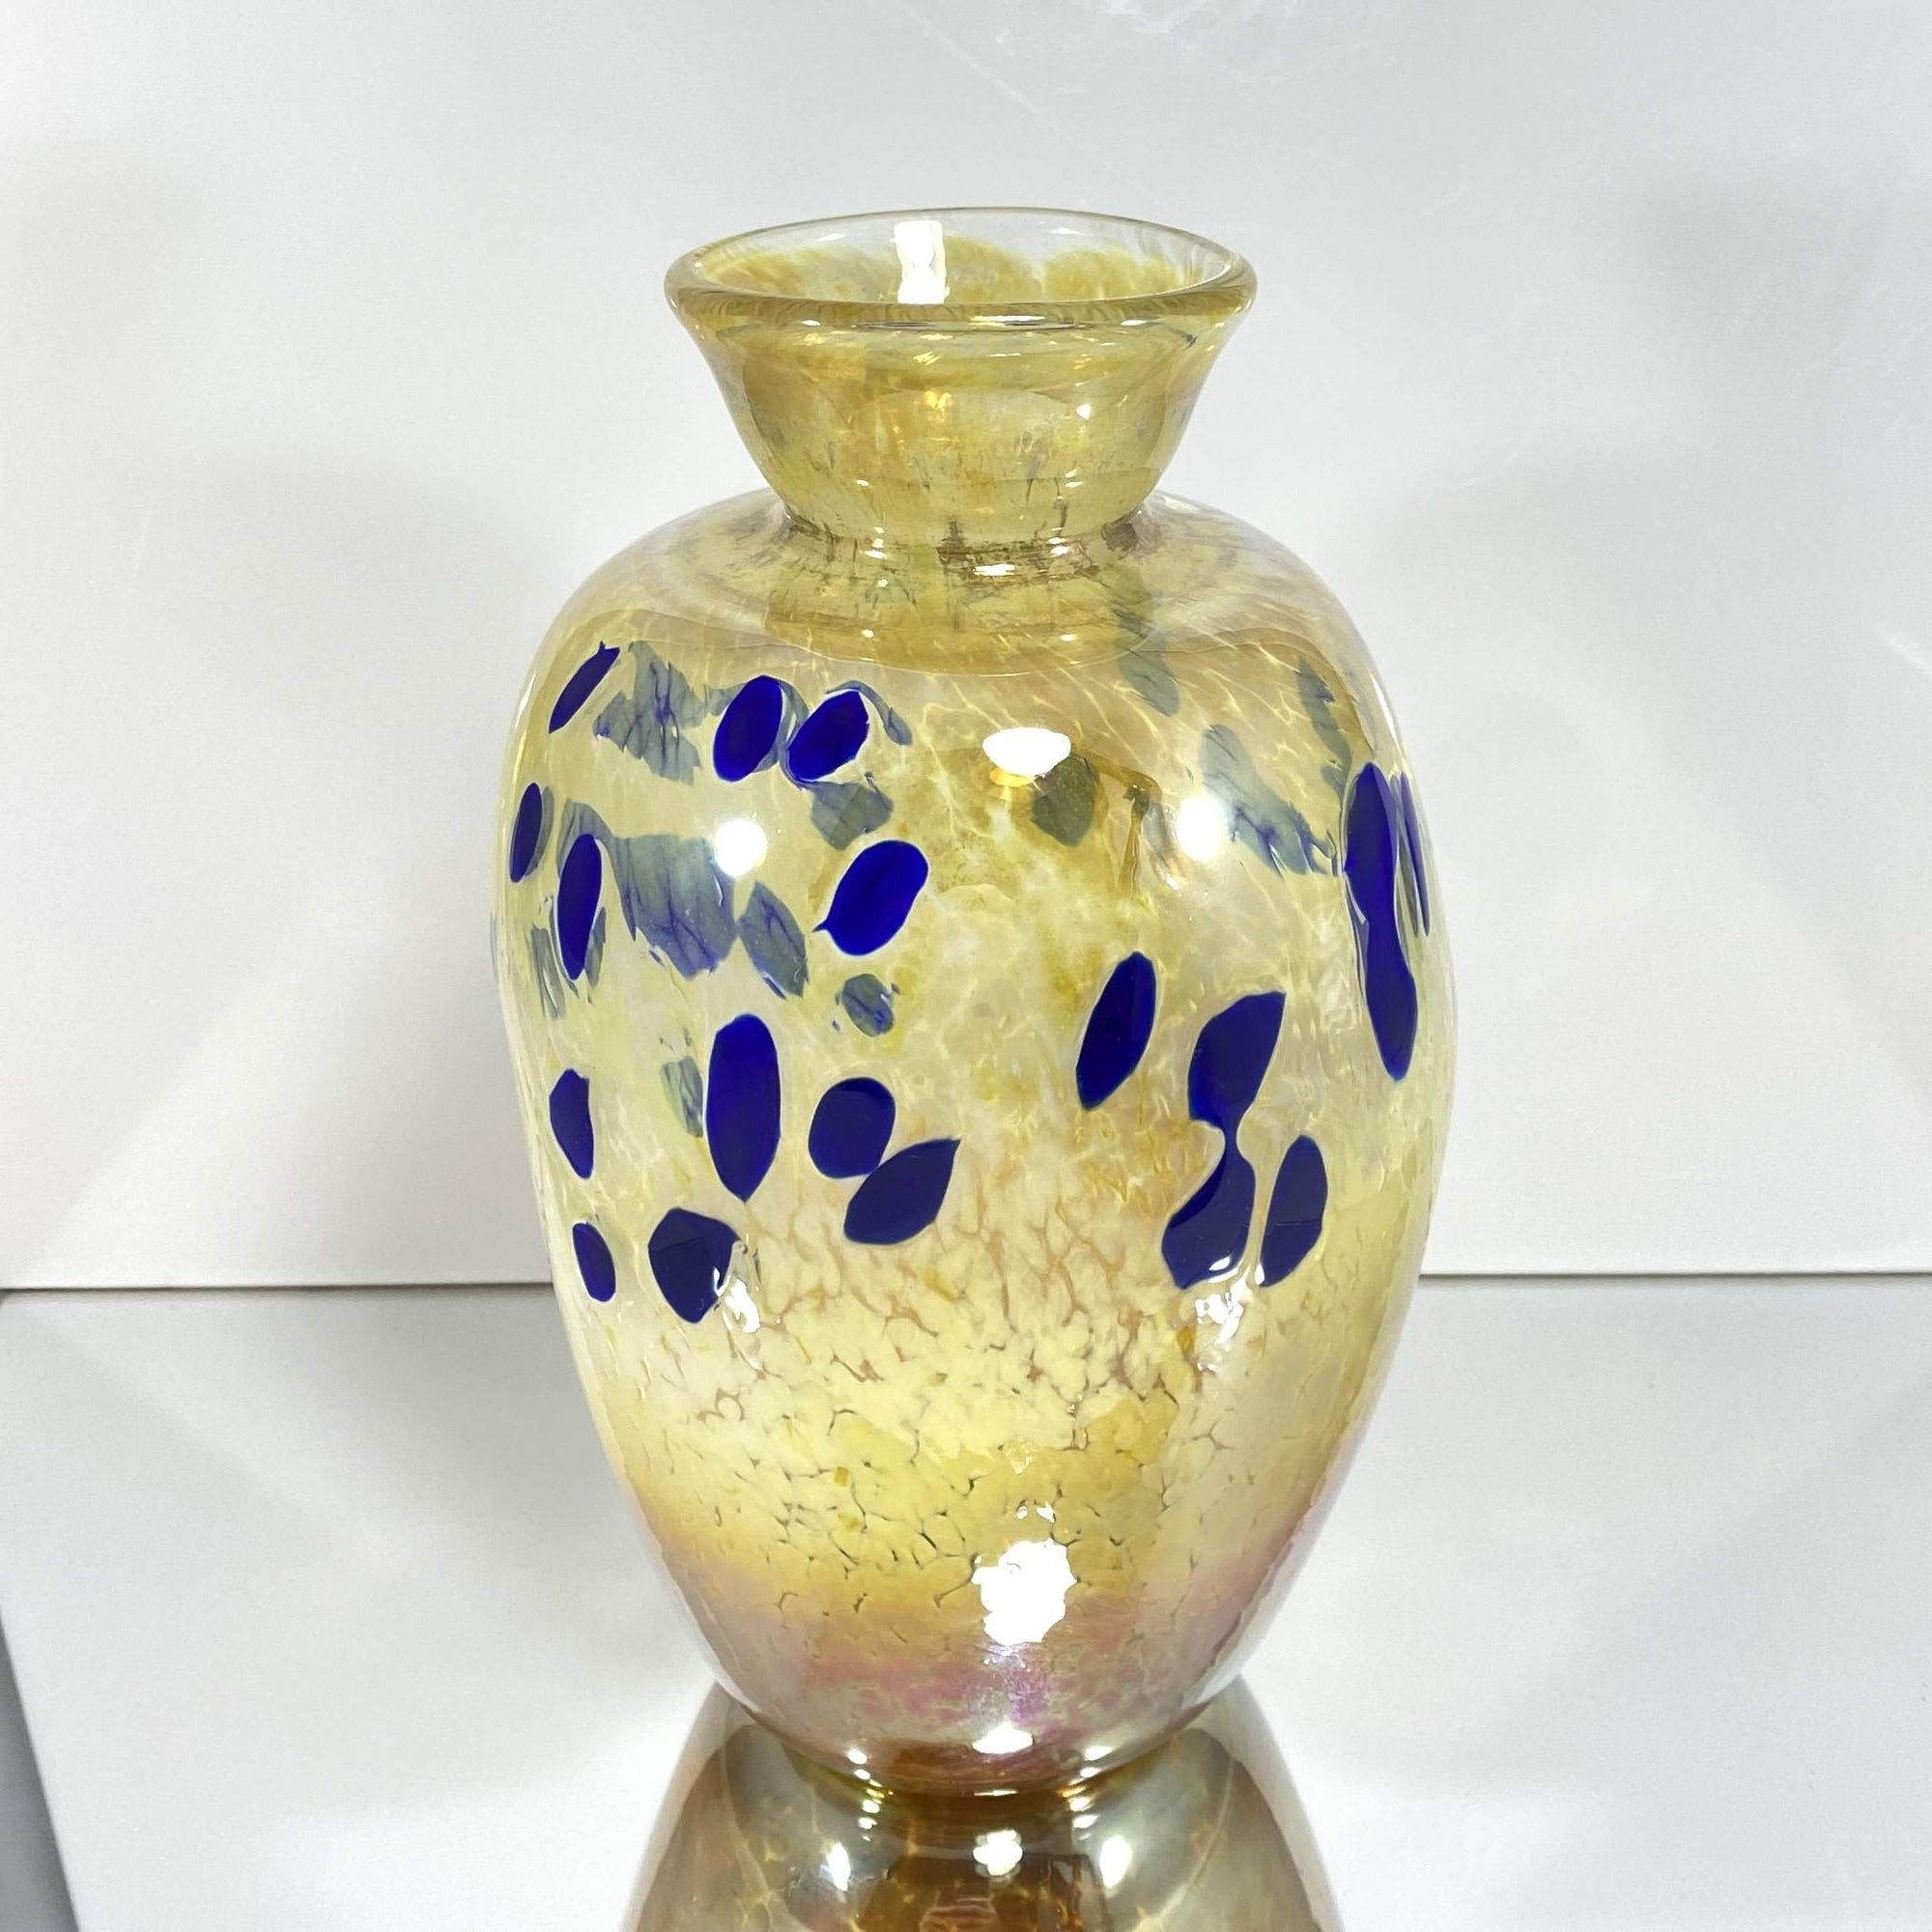 Gold and Navy Vase